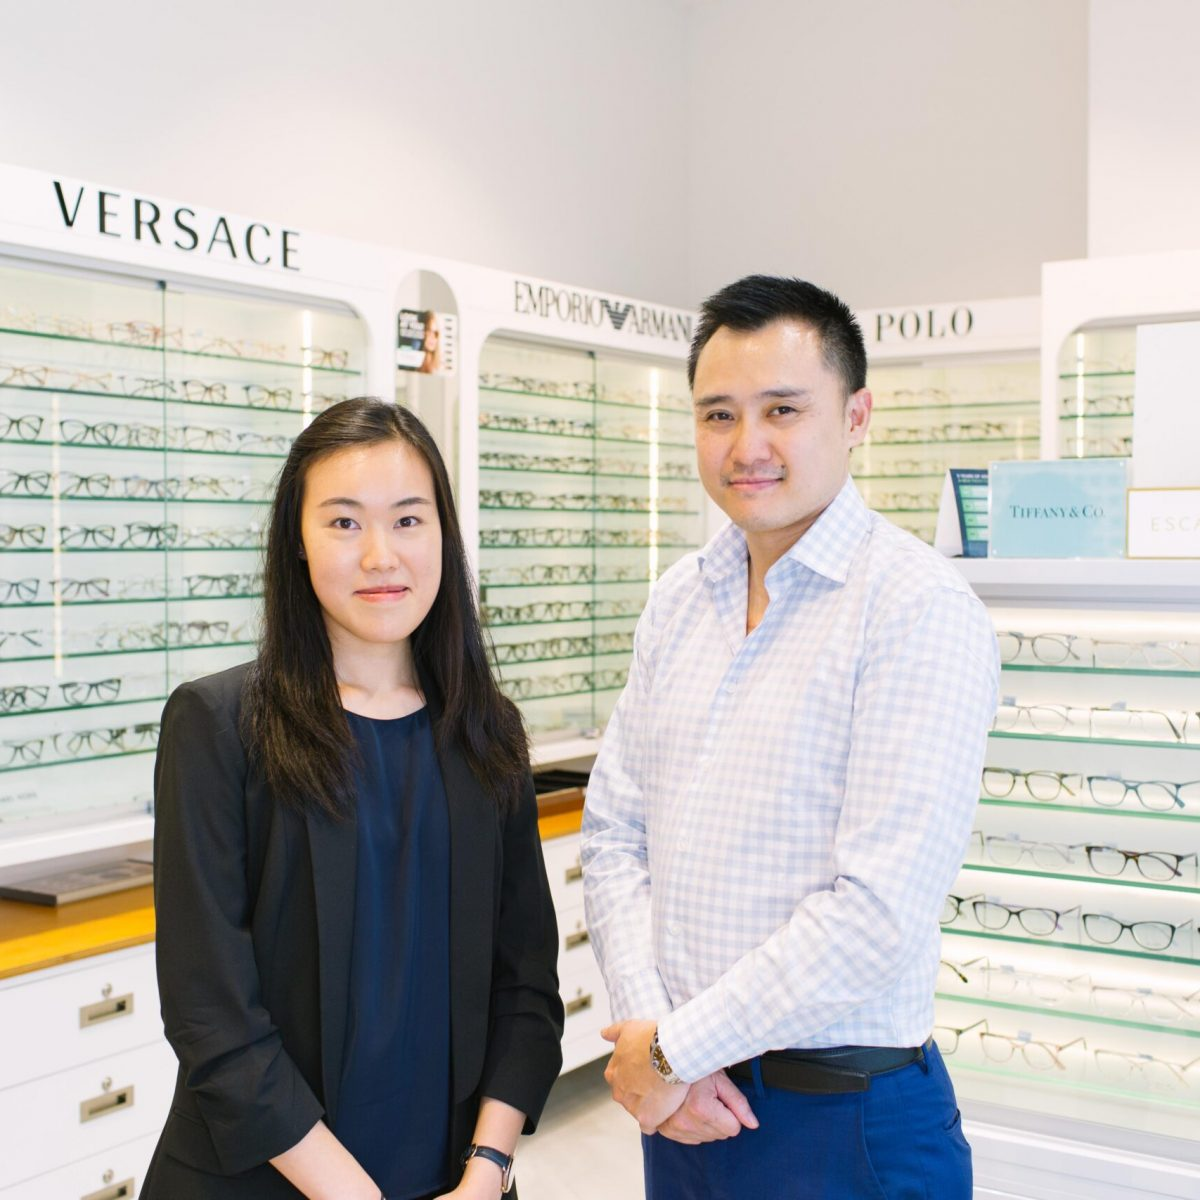 Dr Peter Le and Sylvia Chau team photo together standing in an optical shop.